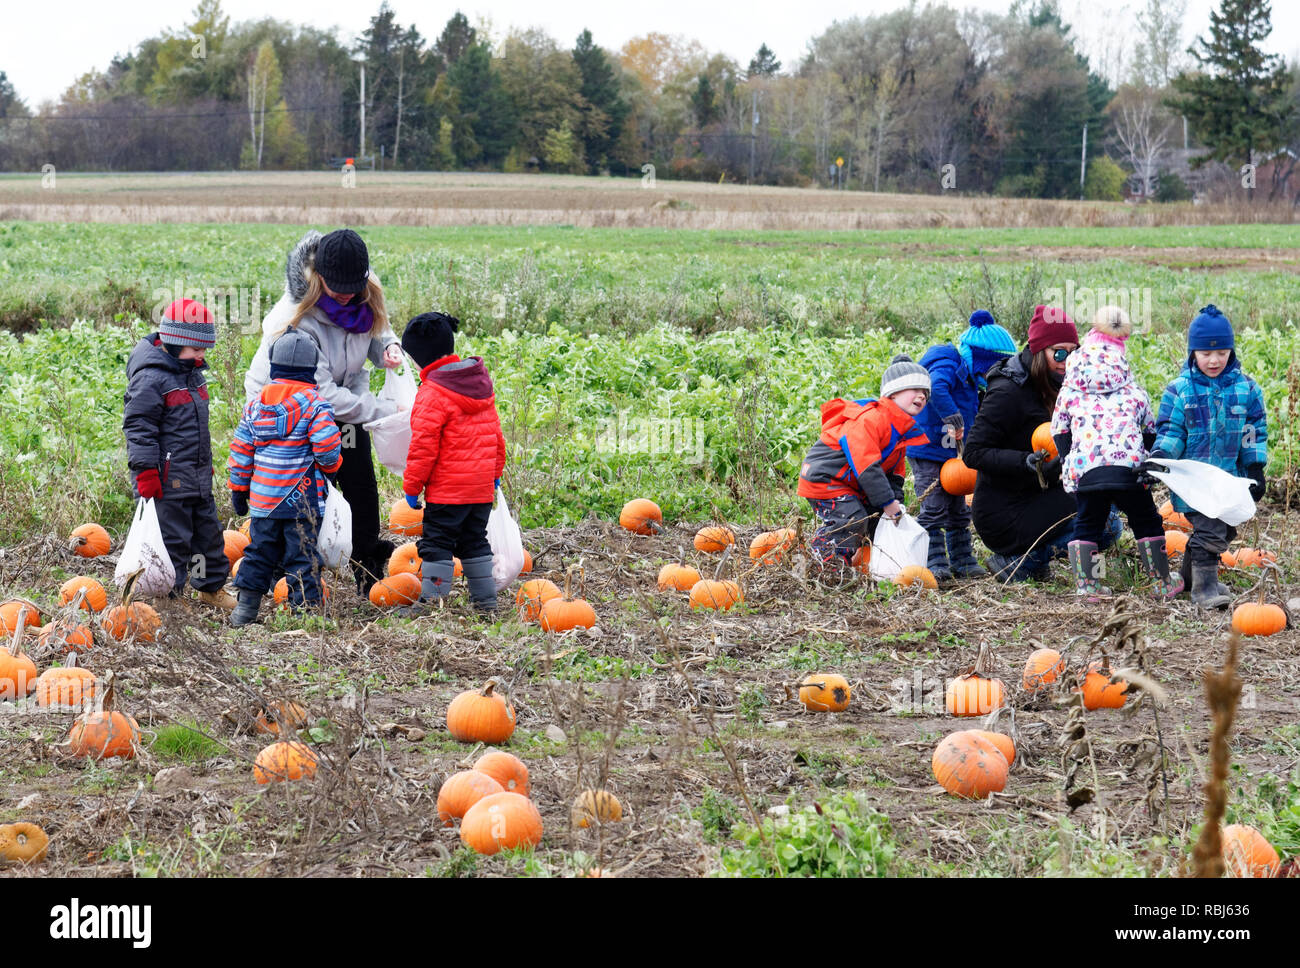 School children picking their halloween pumpkins from a field on a farm visit in Quebec, Canada - Stock Image